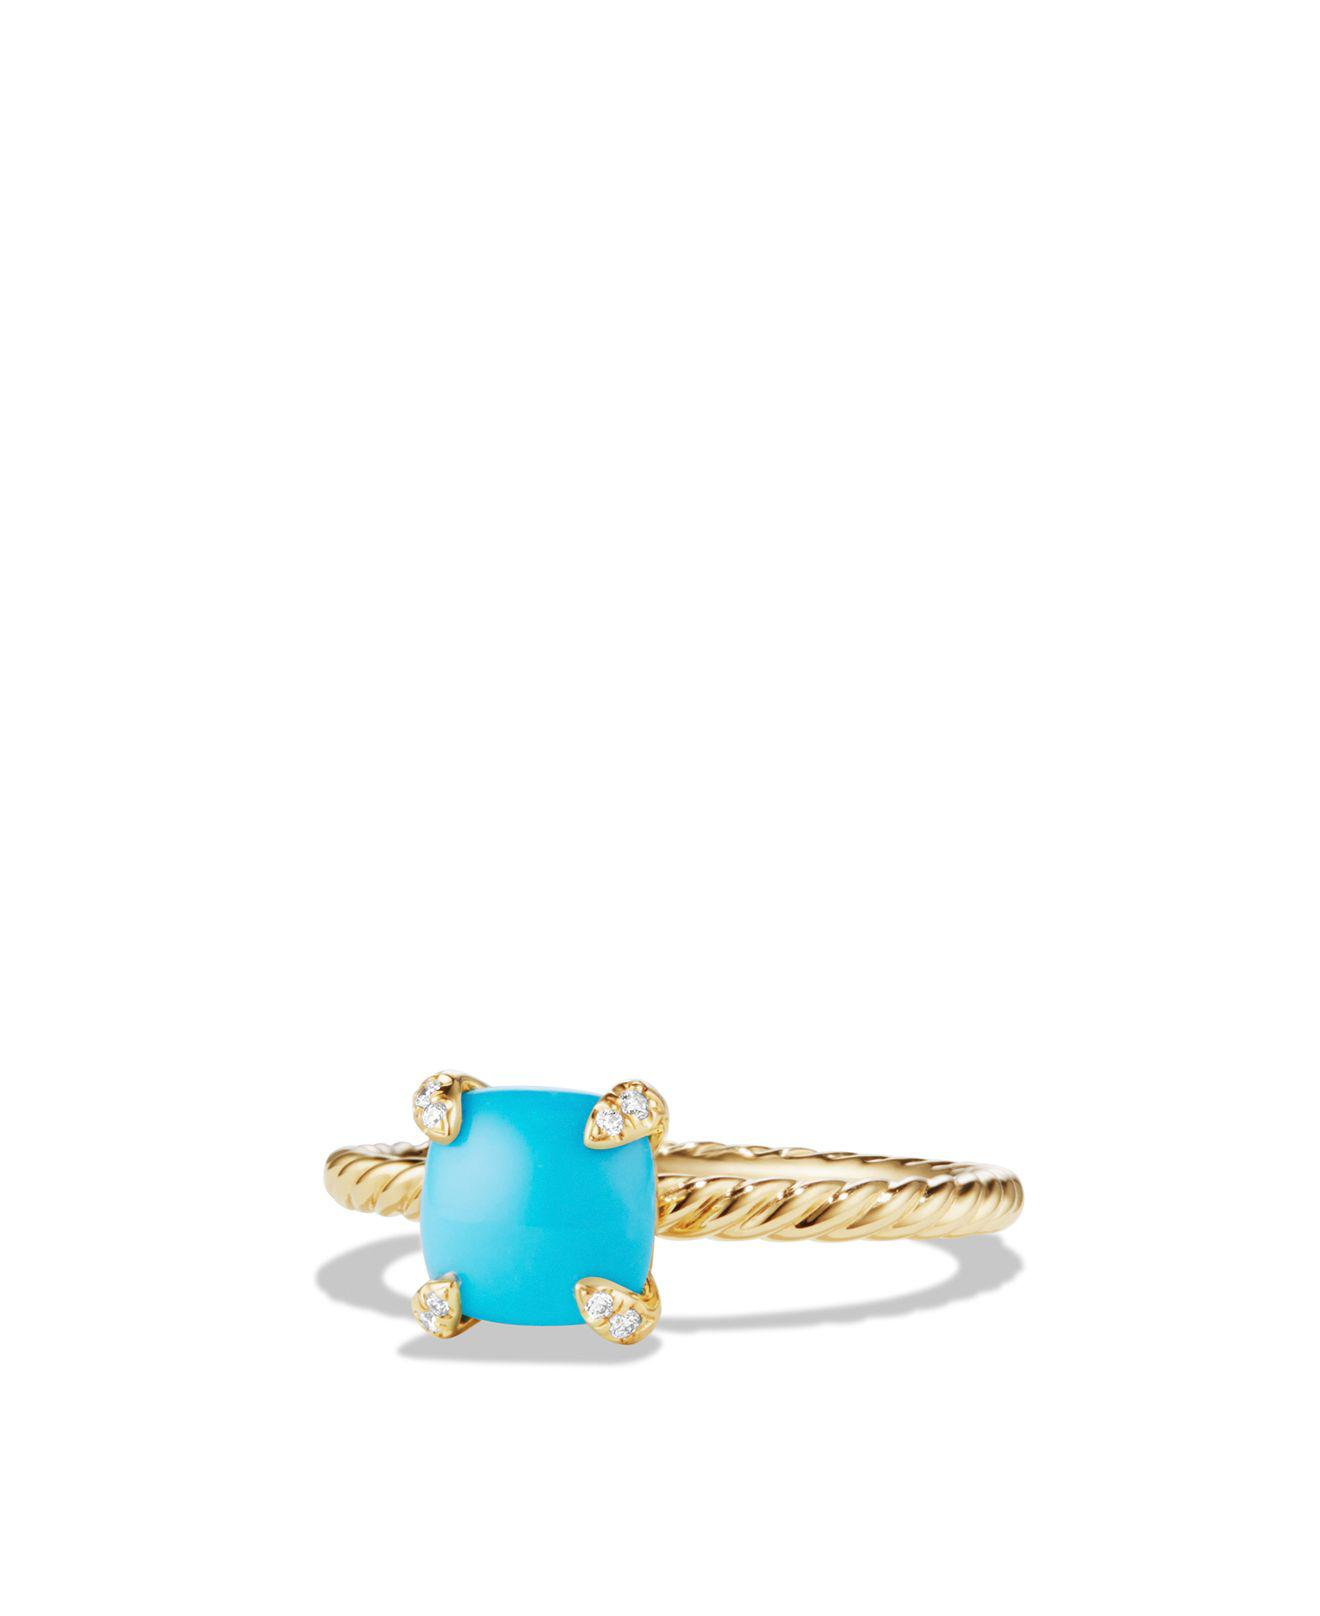 David Yurman 18kt yellow gold Châtelaine turquoise and diamond ring - Blue bSUMax